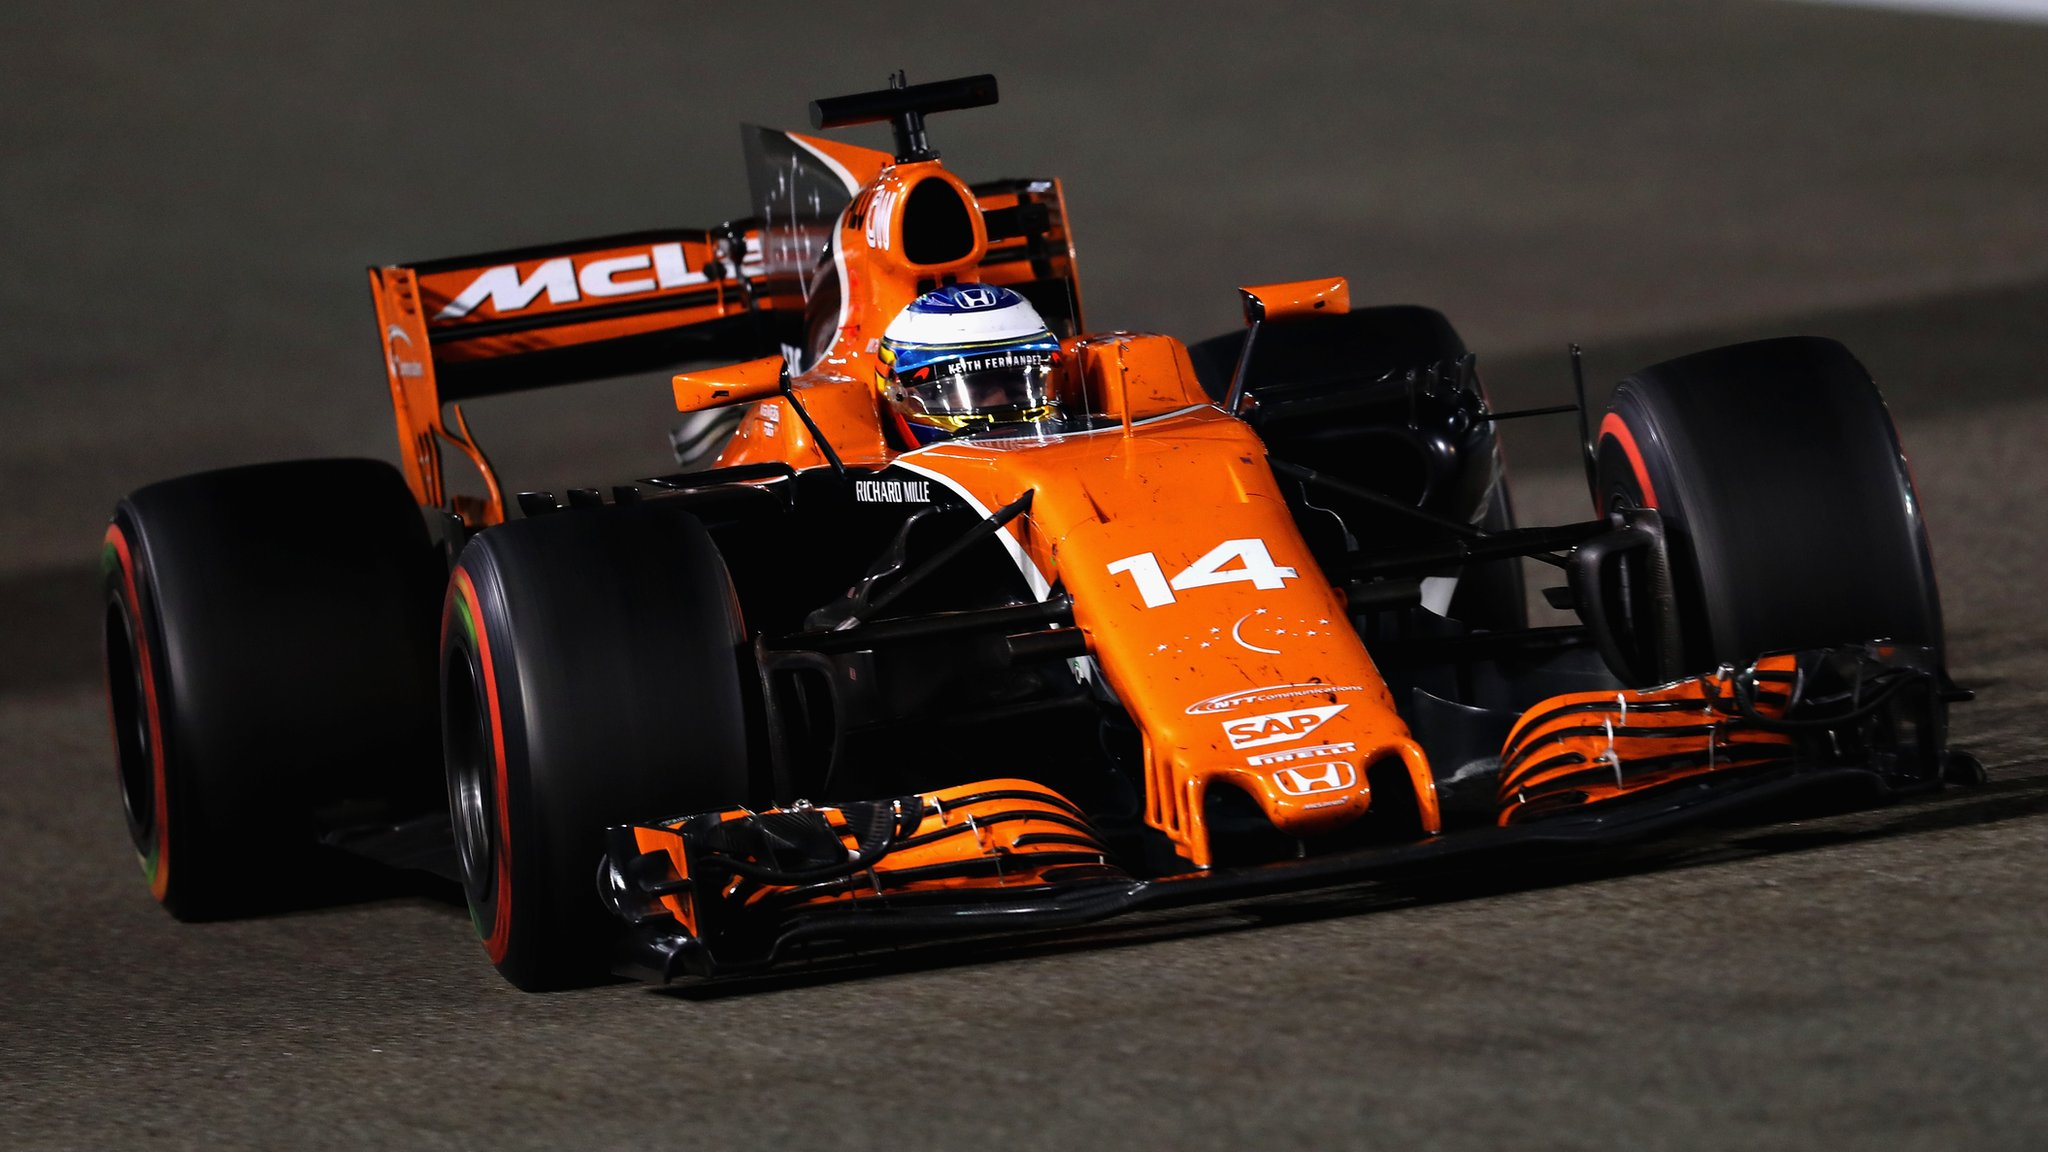 McLaren expect biggest gains of any team in 2018